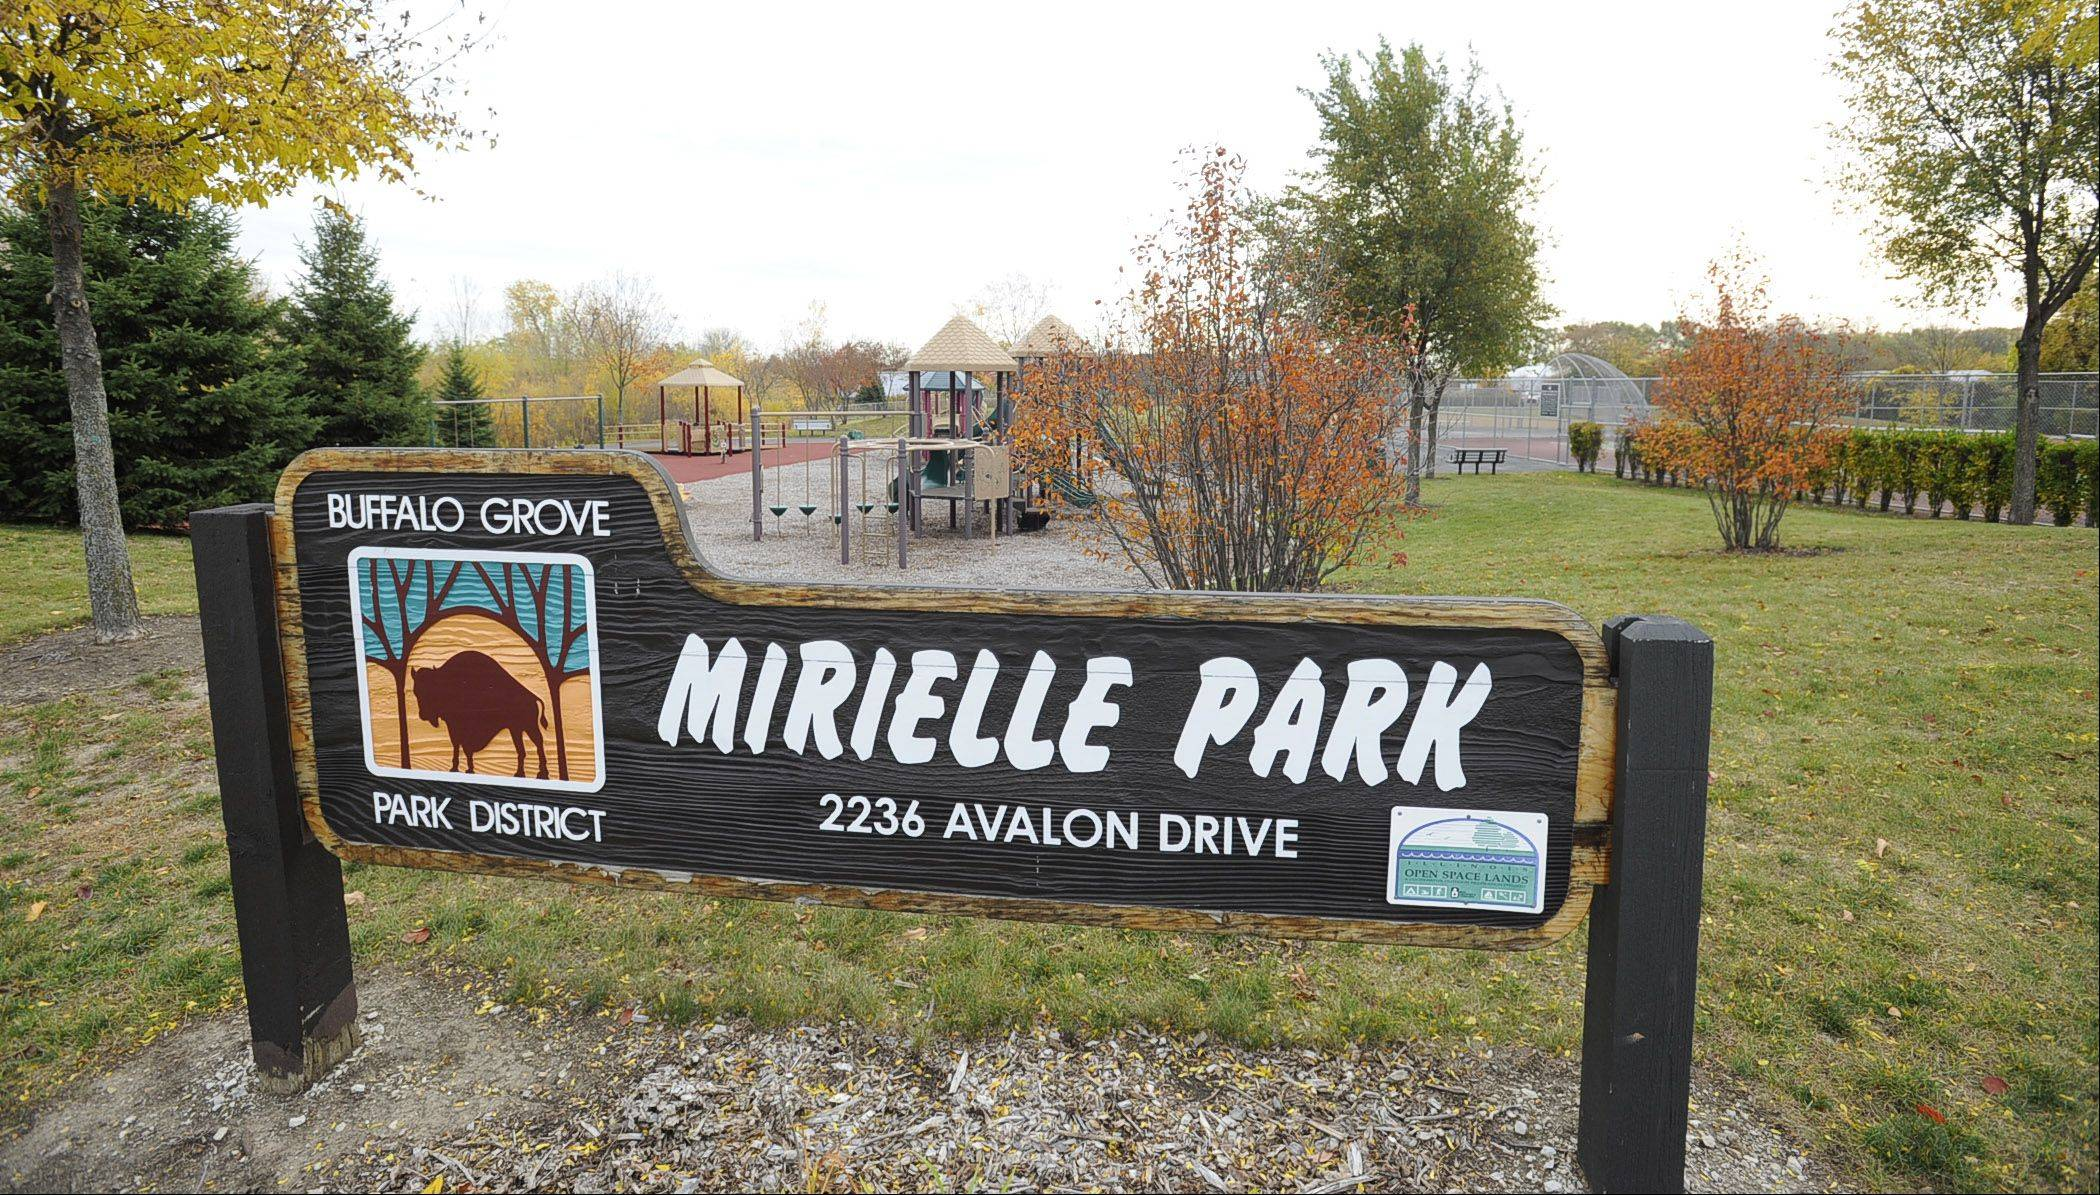 The Buffalo Grove Park District's Mirielle Park is found in the Mirielle neighborhood.